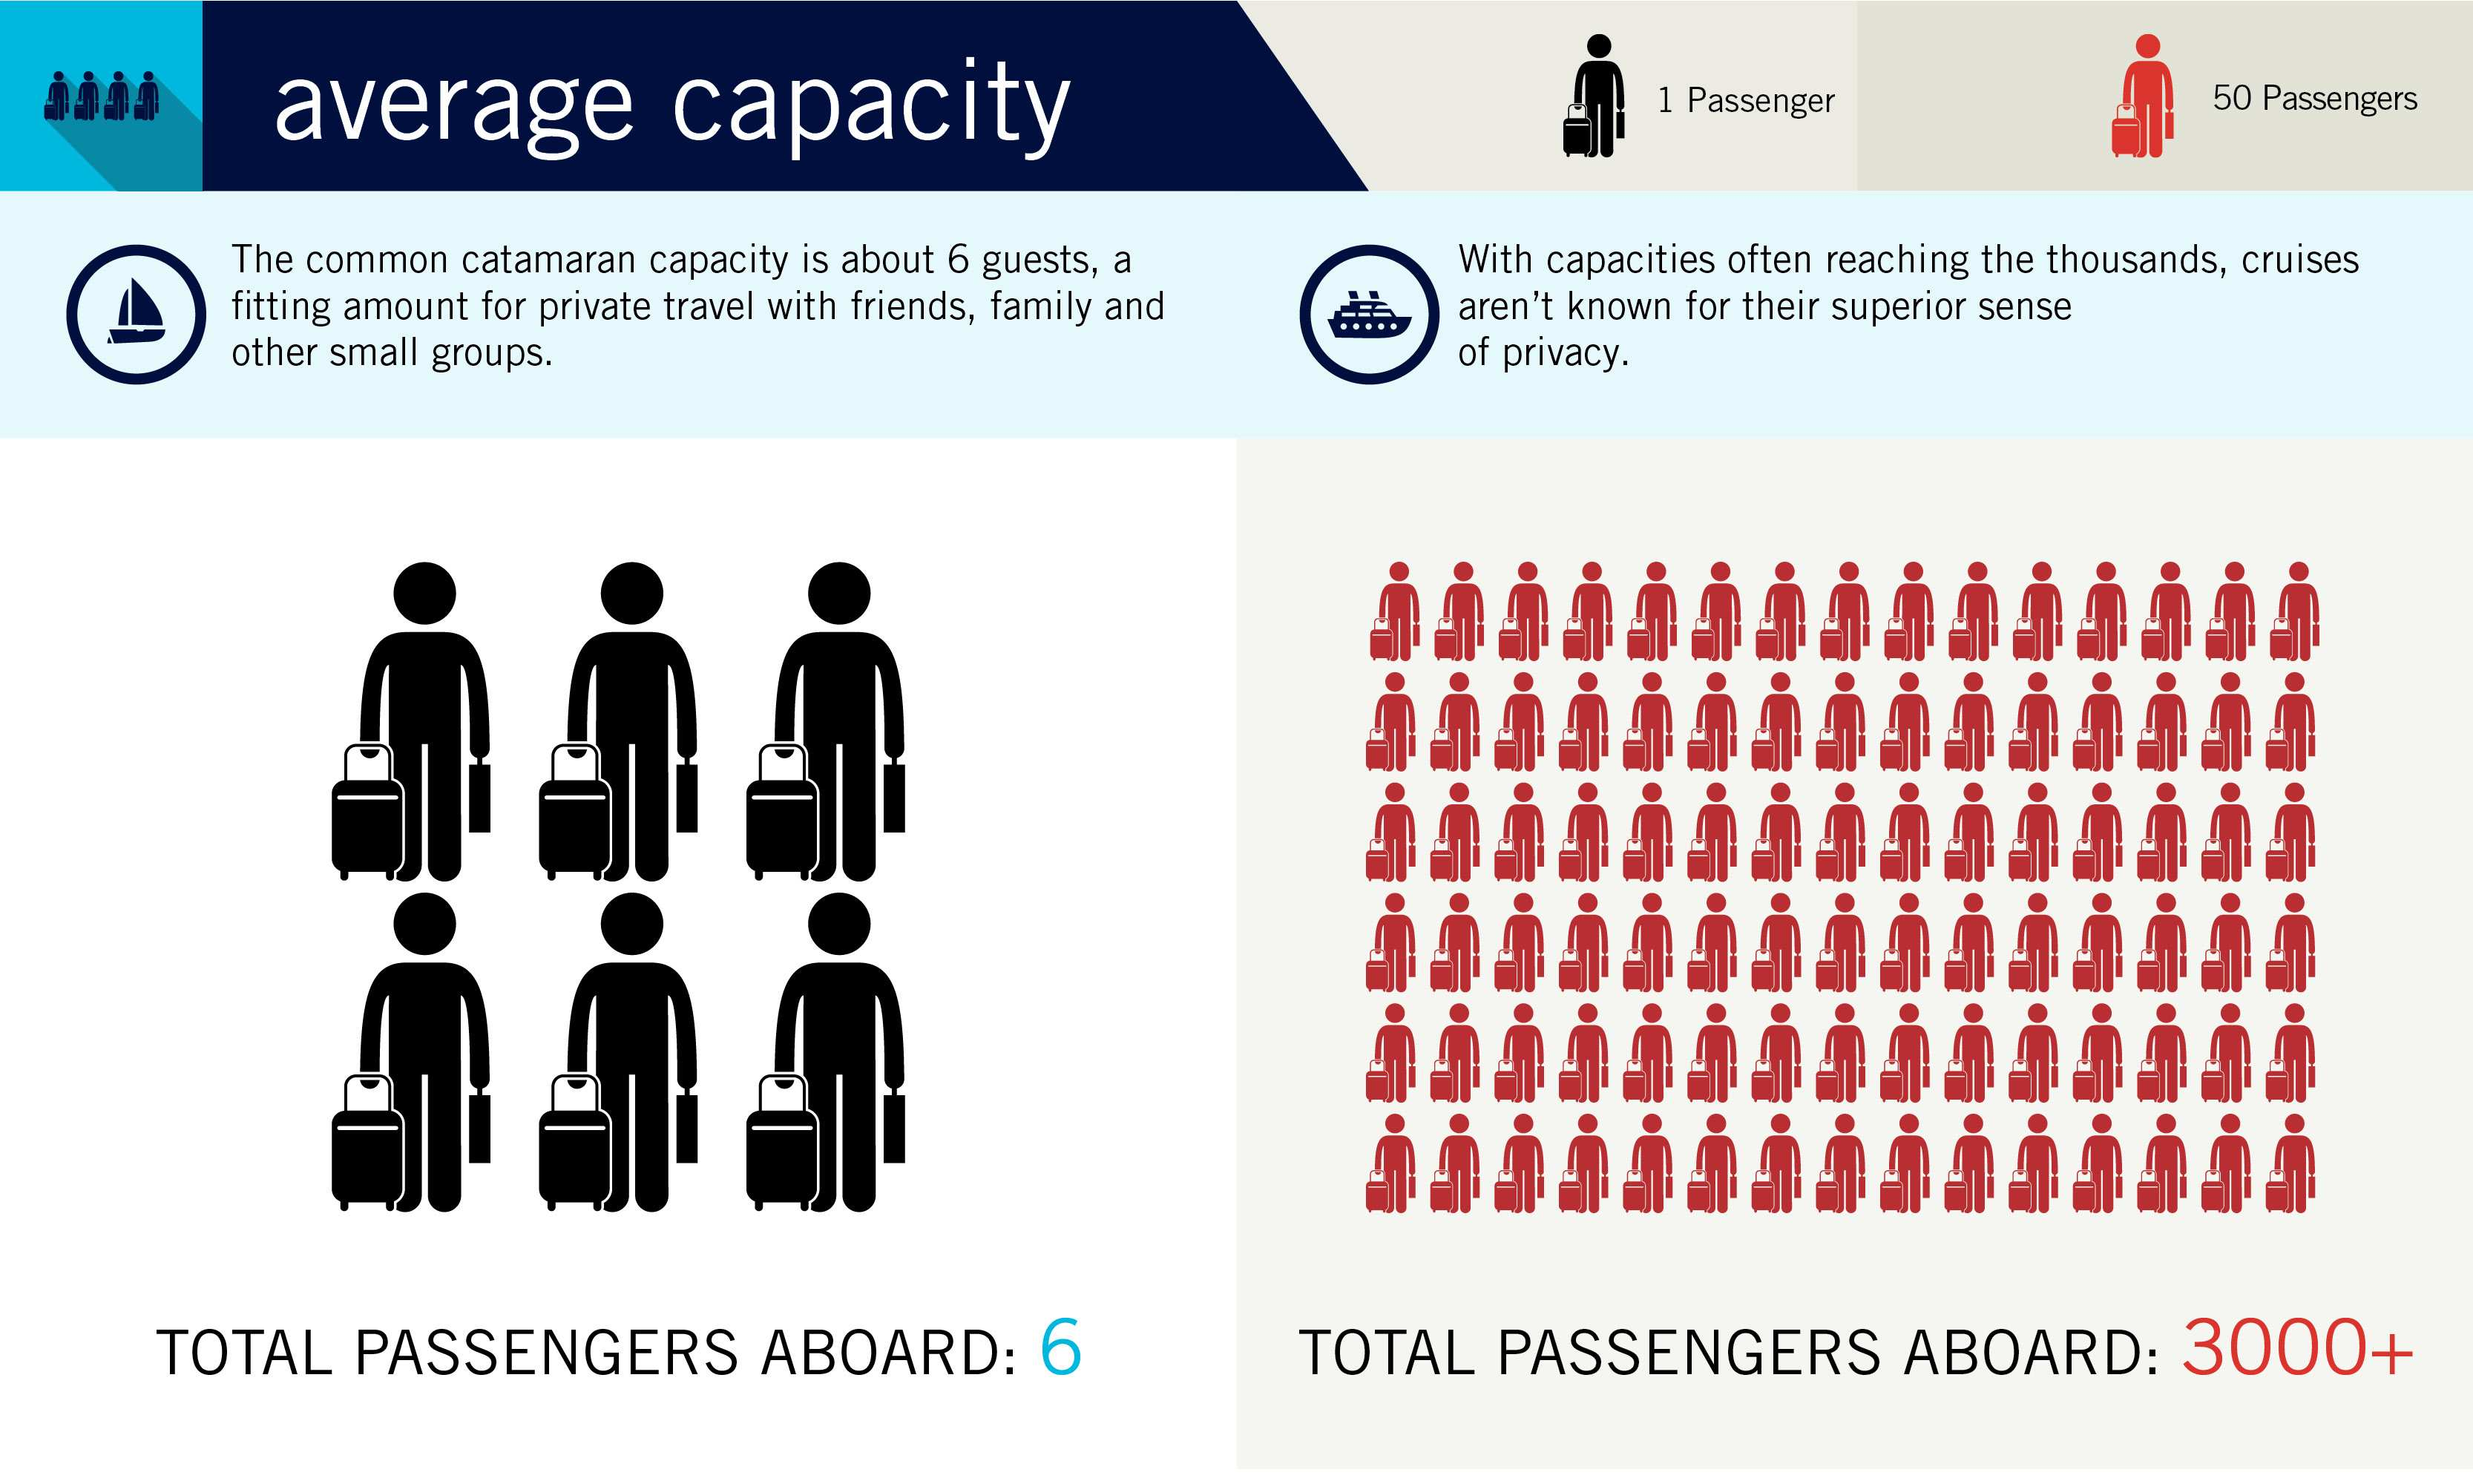 Average Capacity